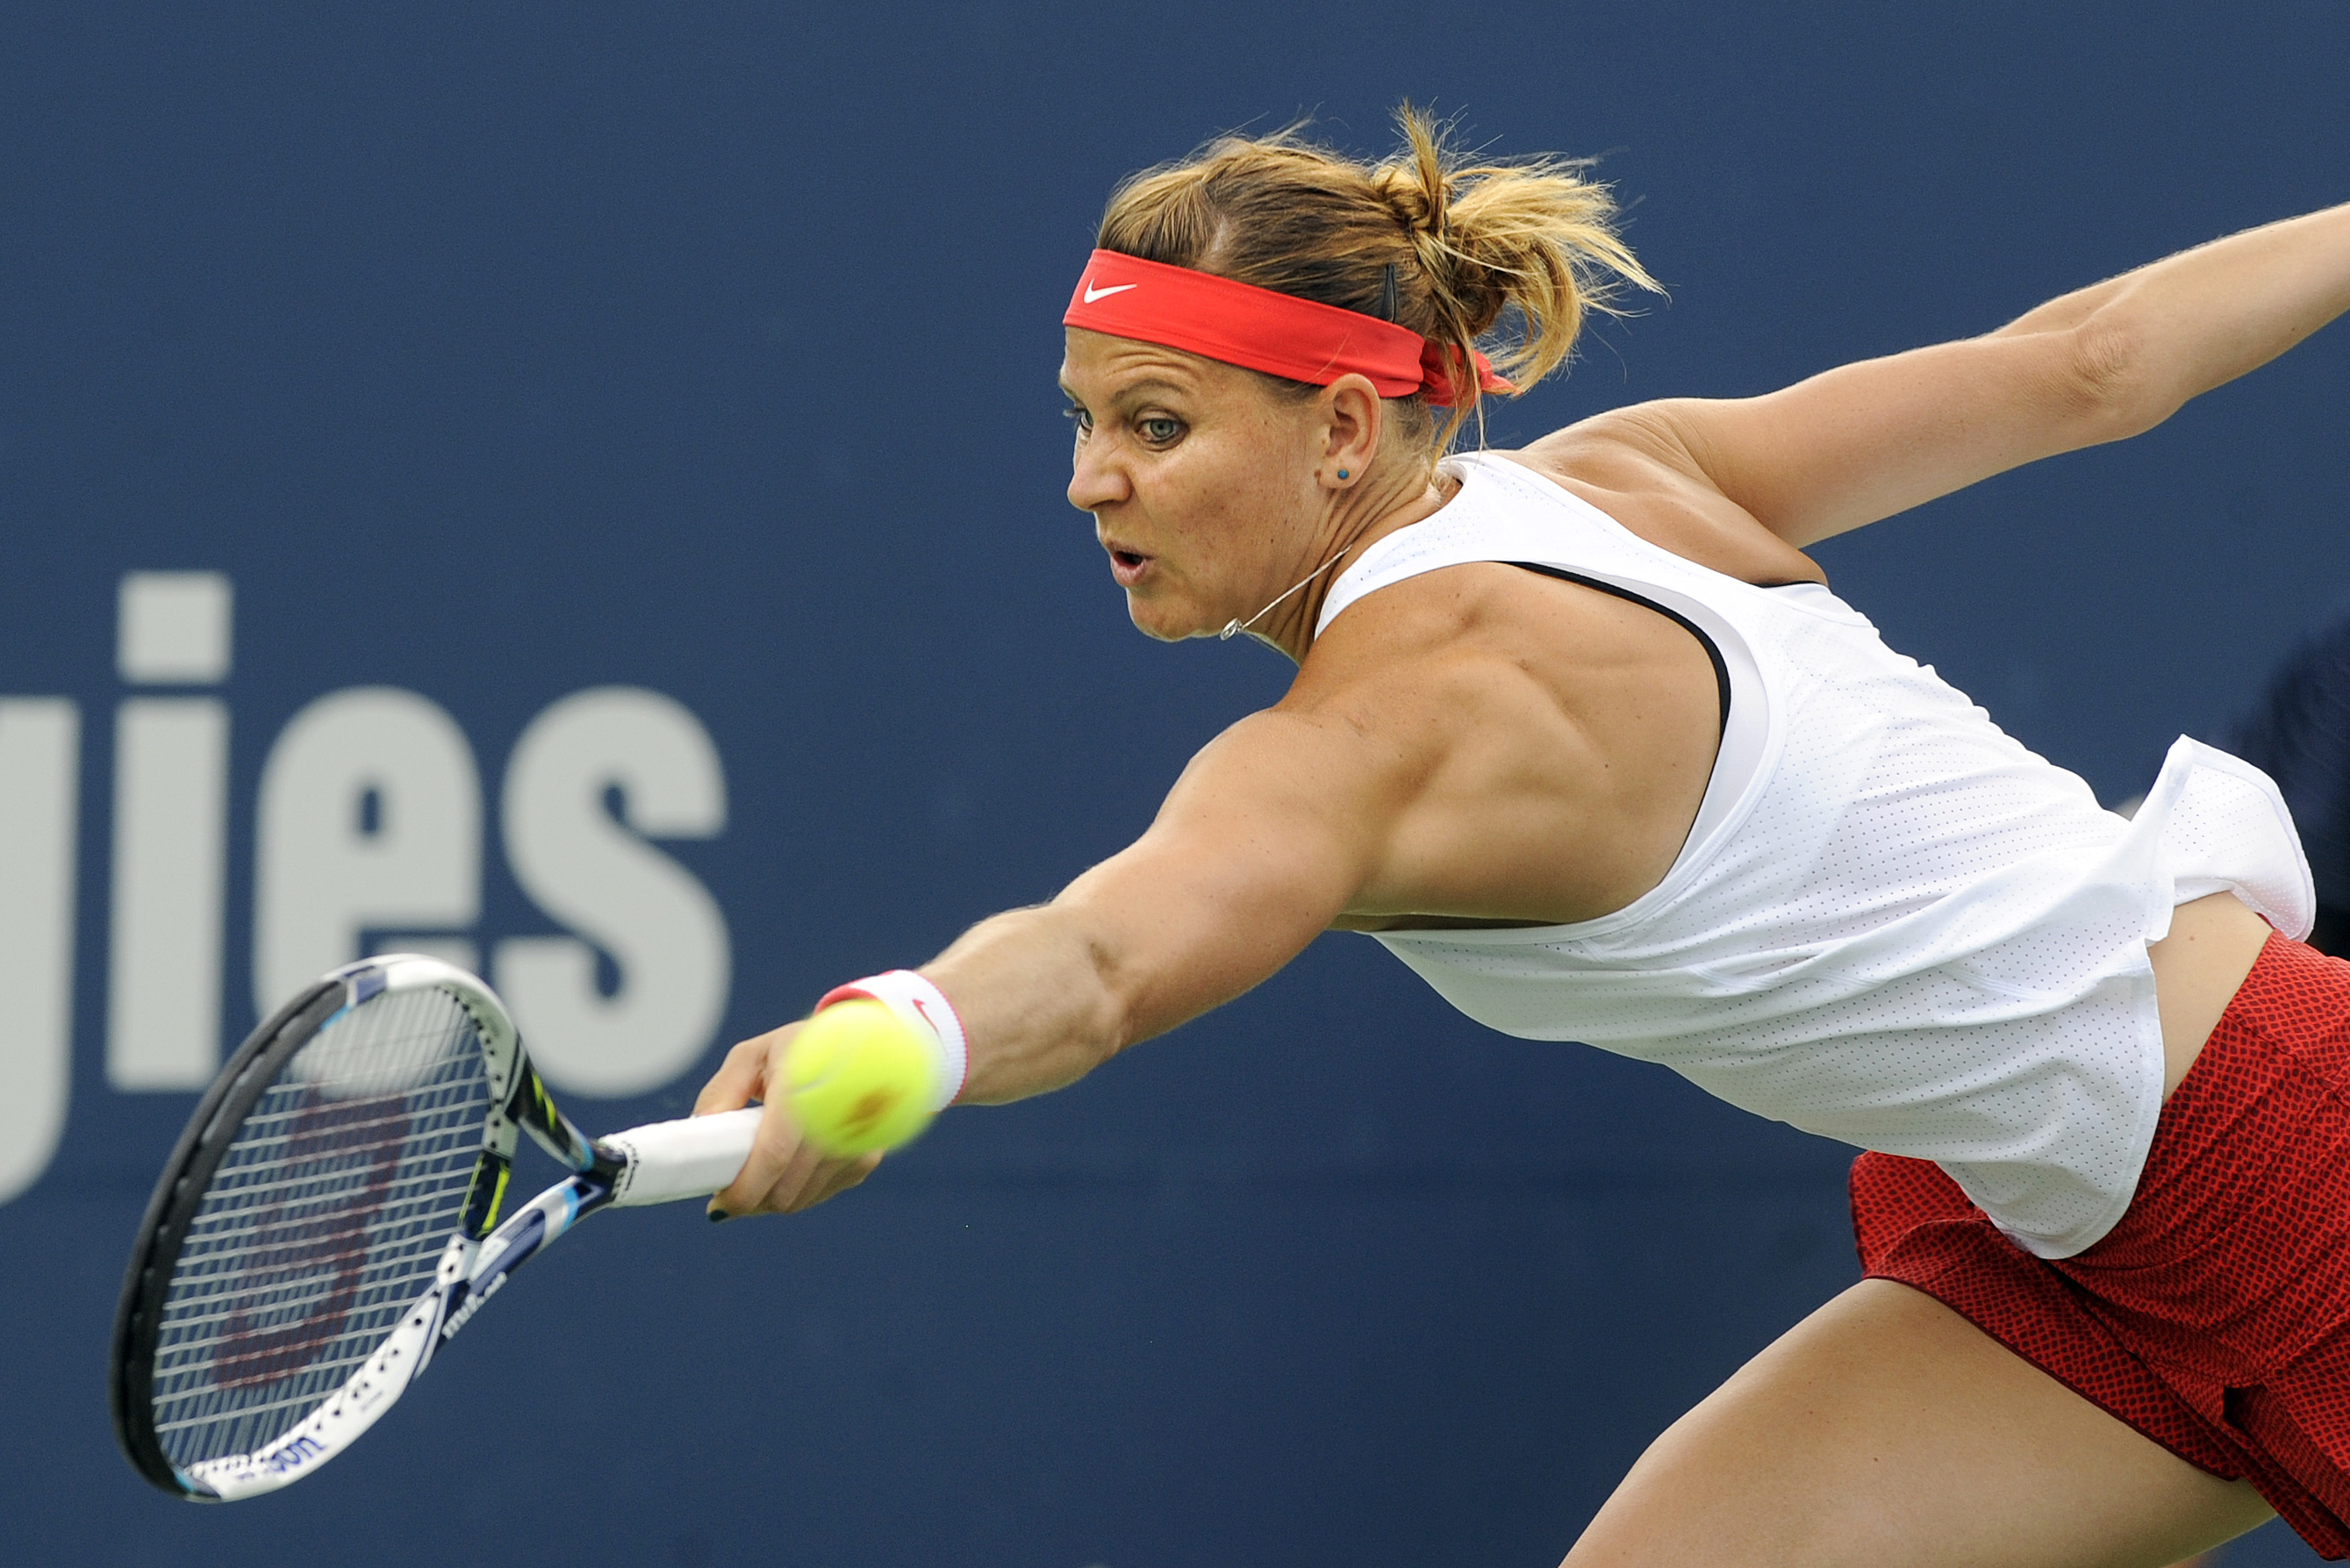 FILE - This is a Thursday, Aug. 27, 2015 file photo of Lucie Safarova, of the Czech Republic, as she  reaches for a backhand during her match against Dominika Cibulkova, of Slovakia, during the quartefinals of the Connecticut Open tennis tournament in New